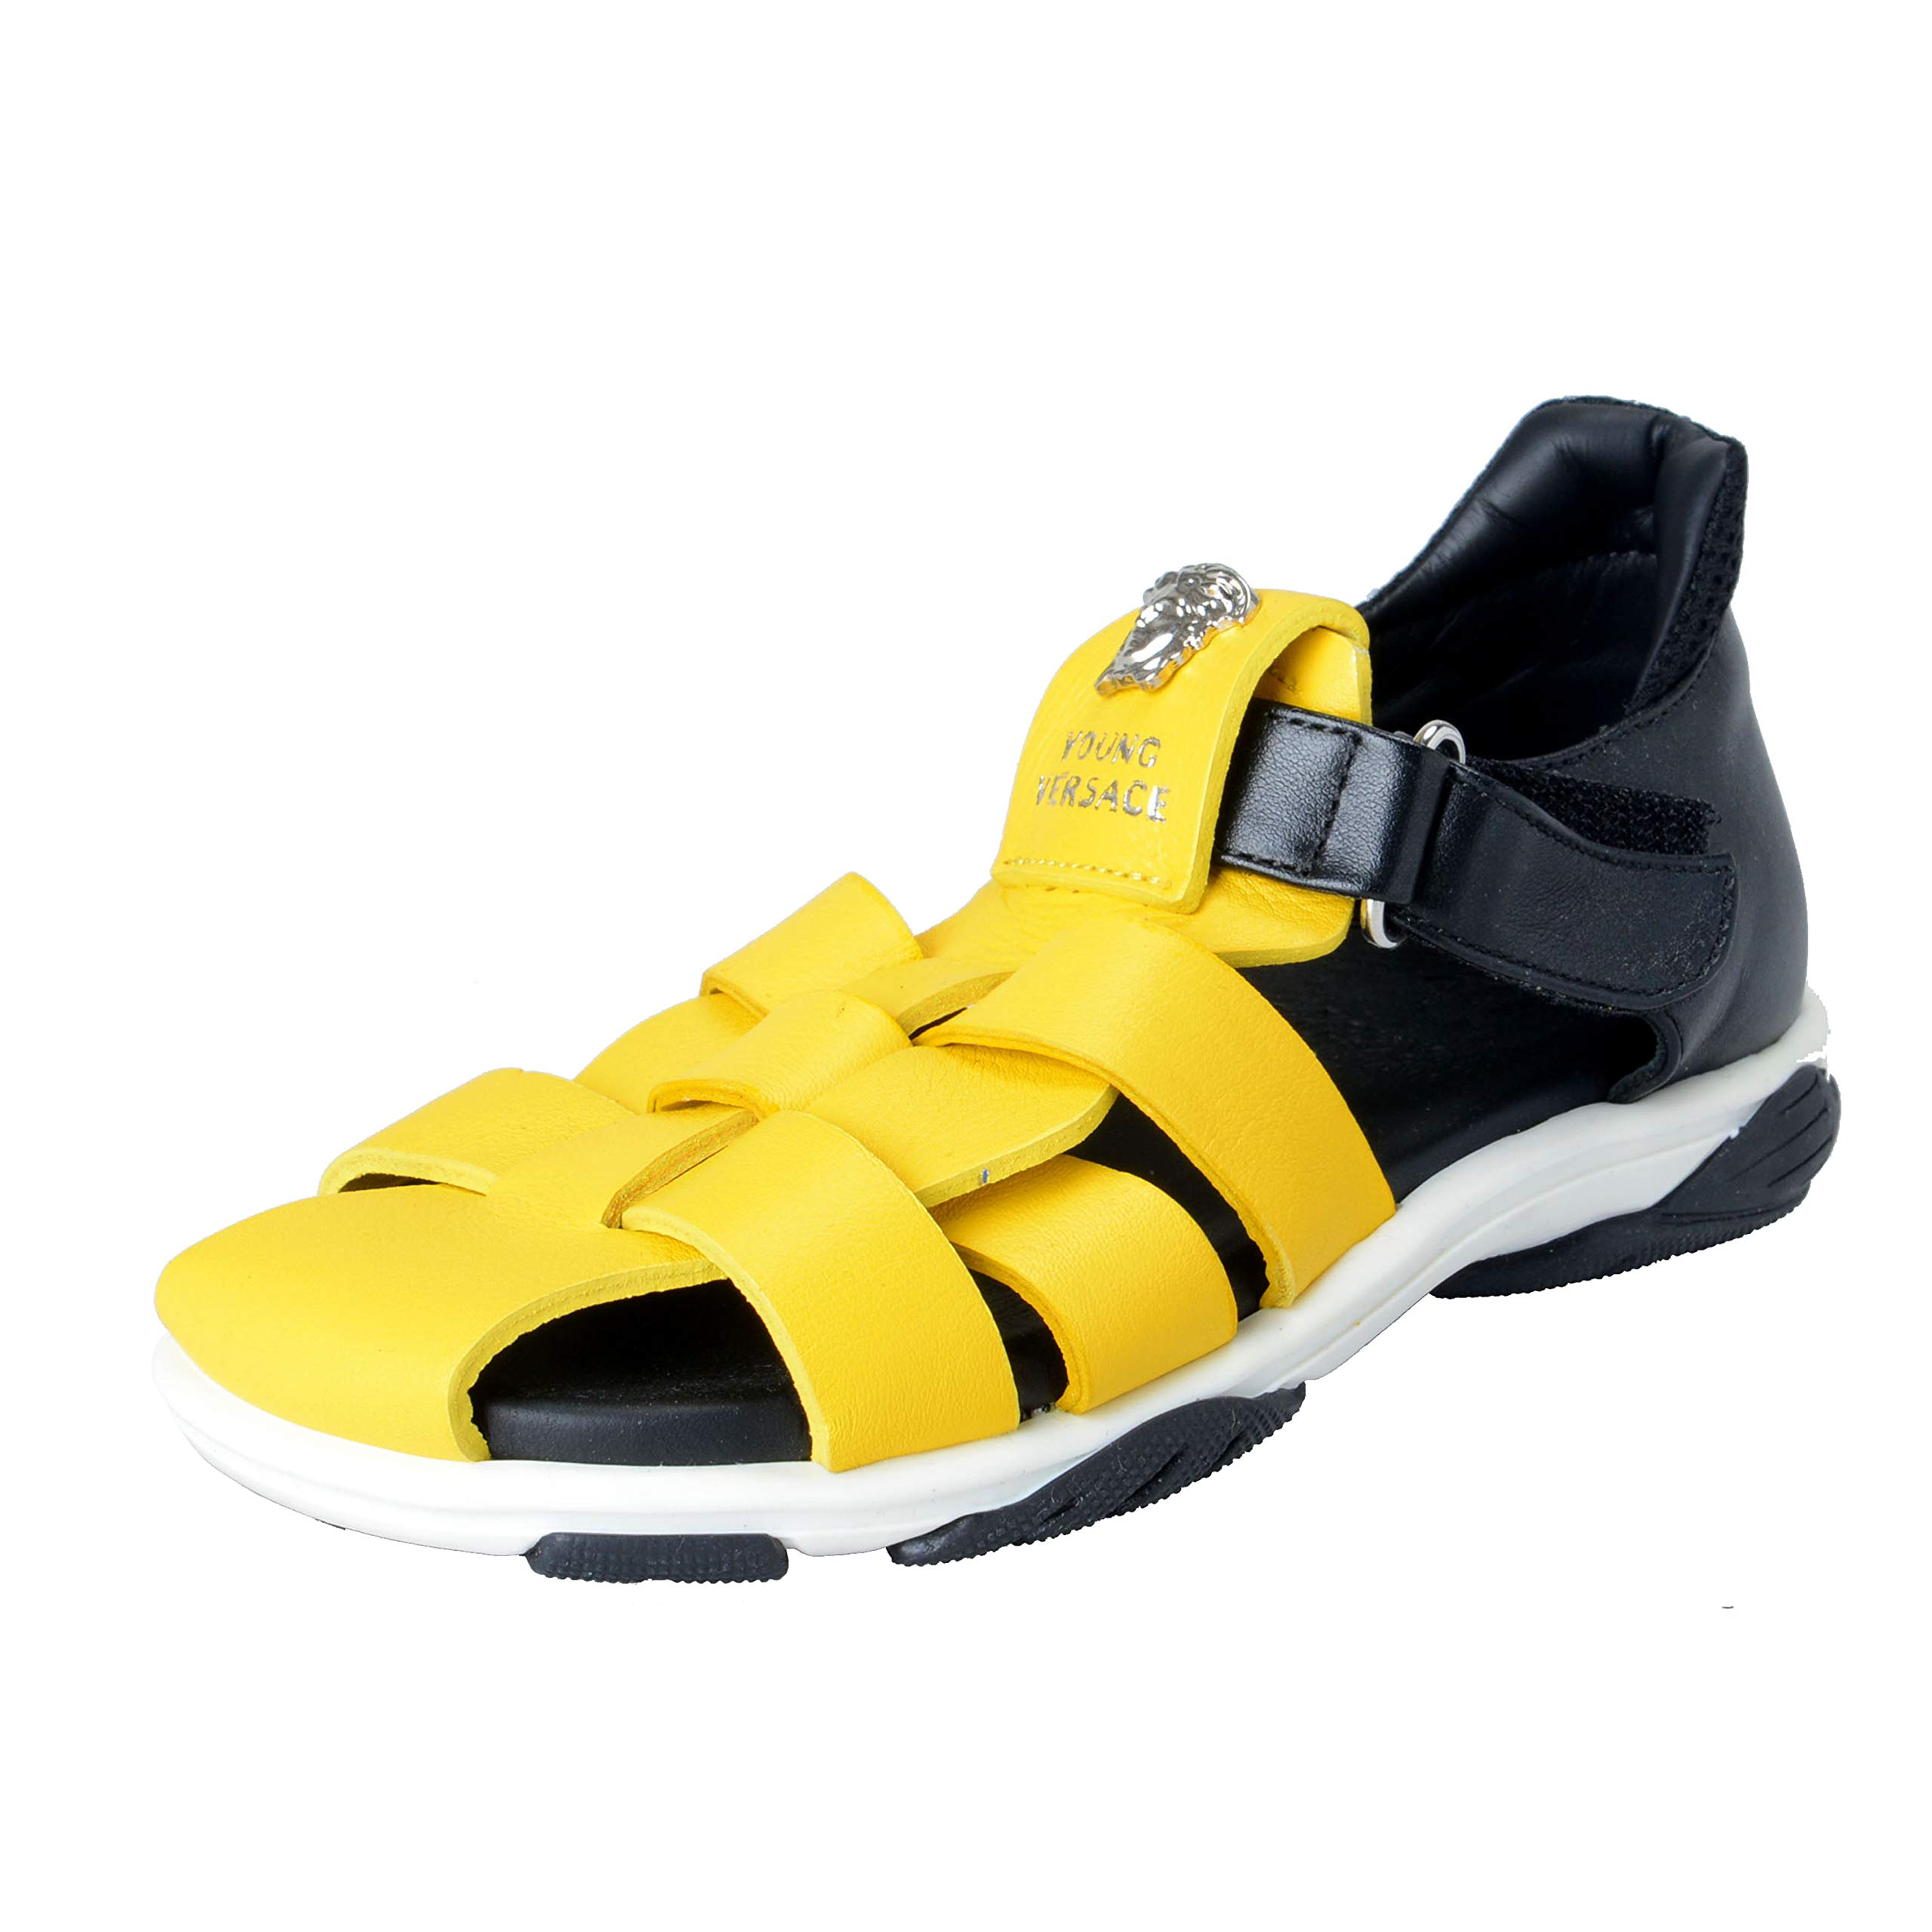 Versace Young Kid's Leather Medusa Sandals Shoes Sz 30 Yellow/Black